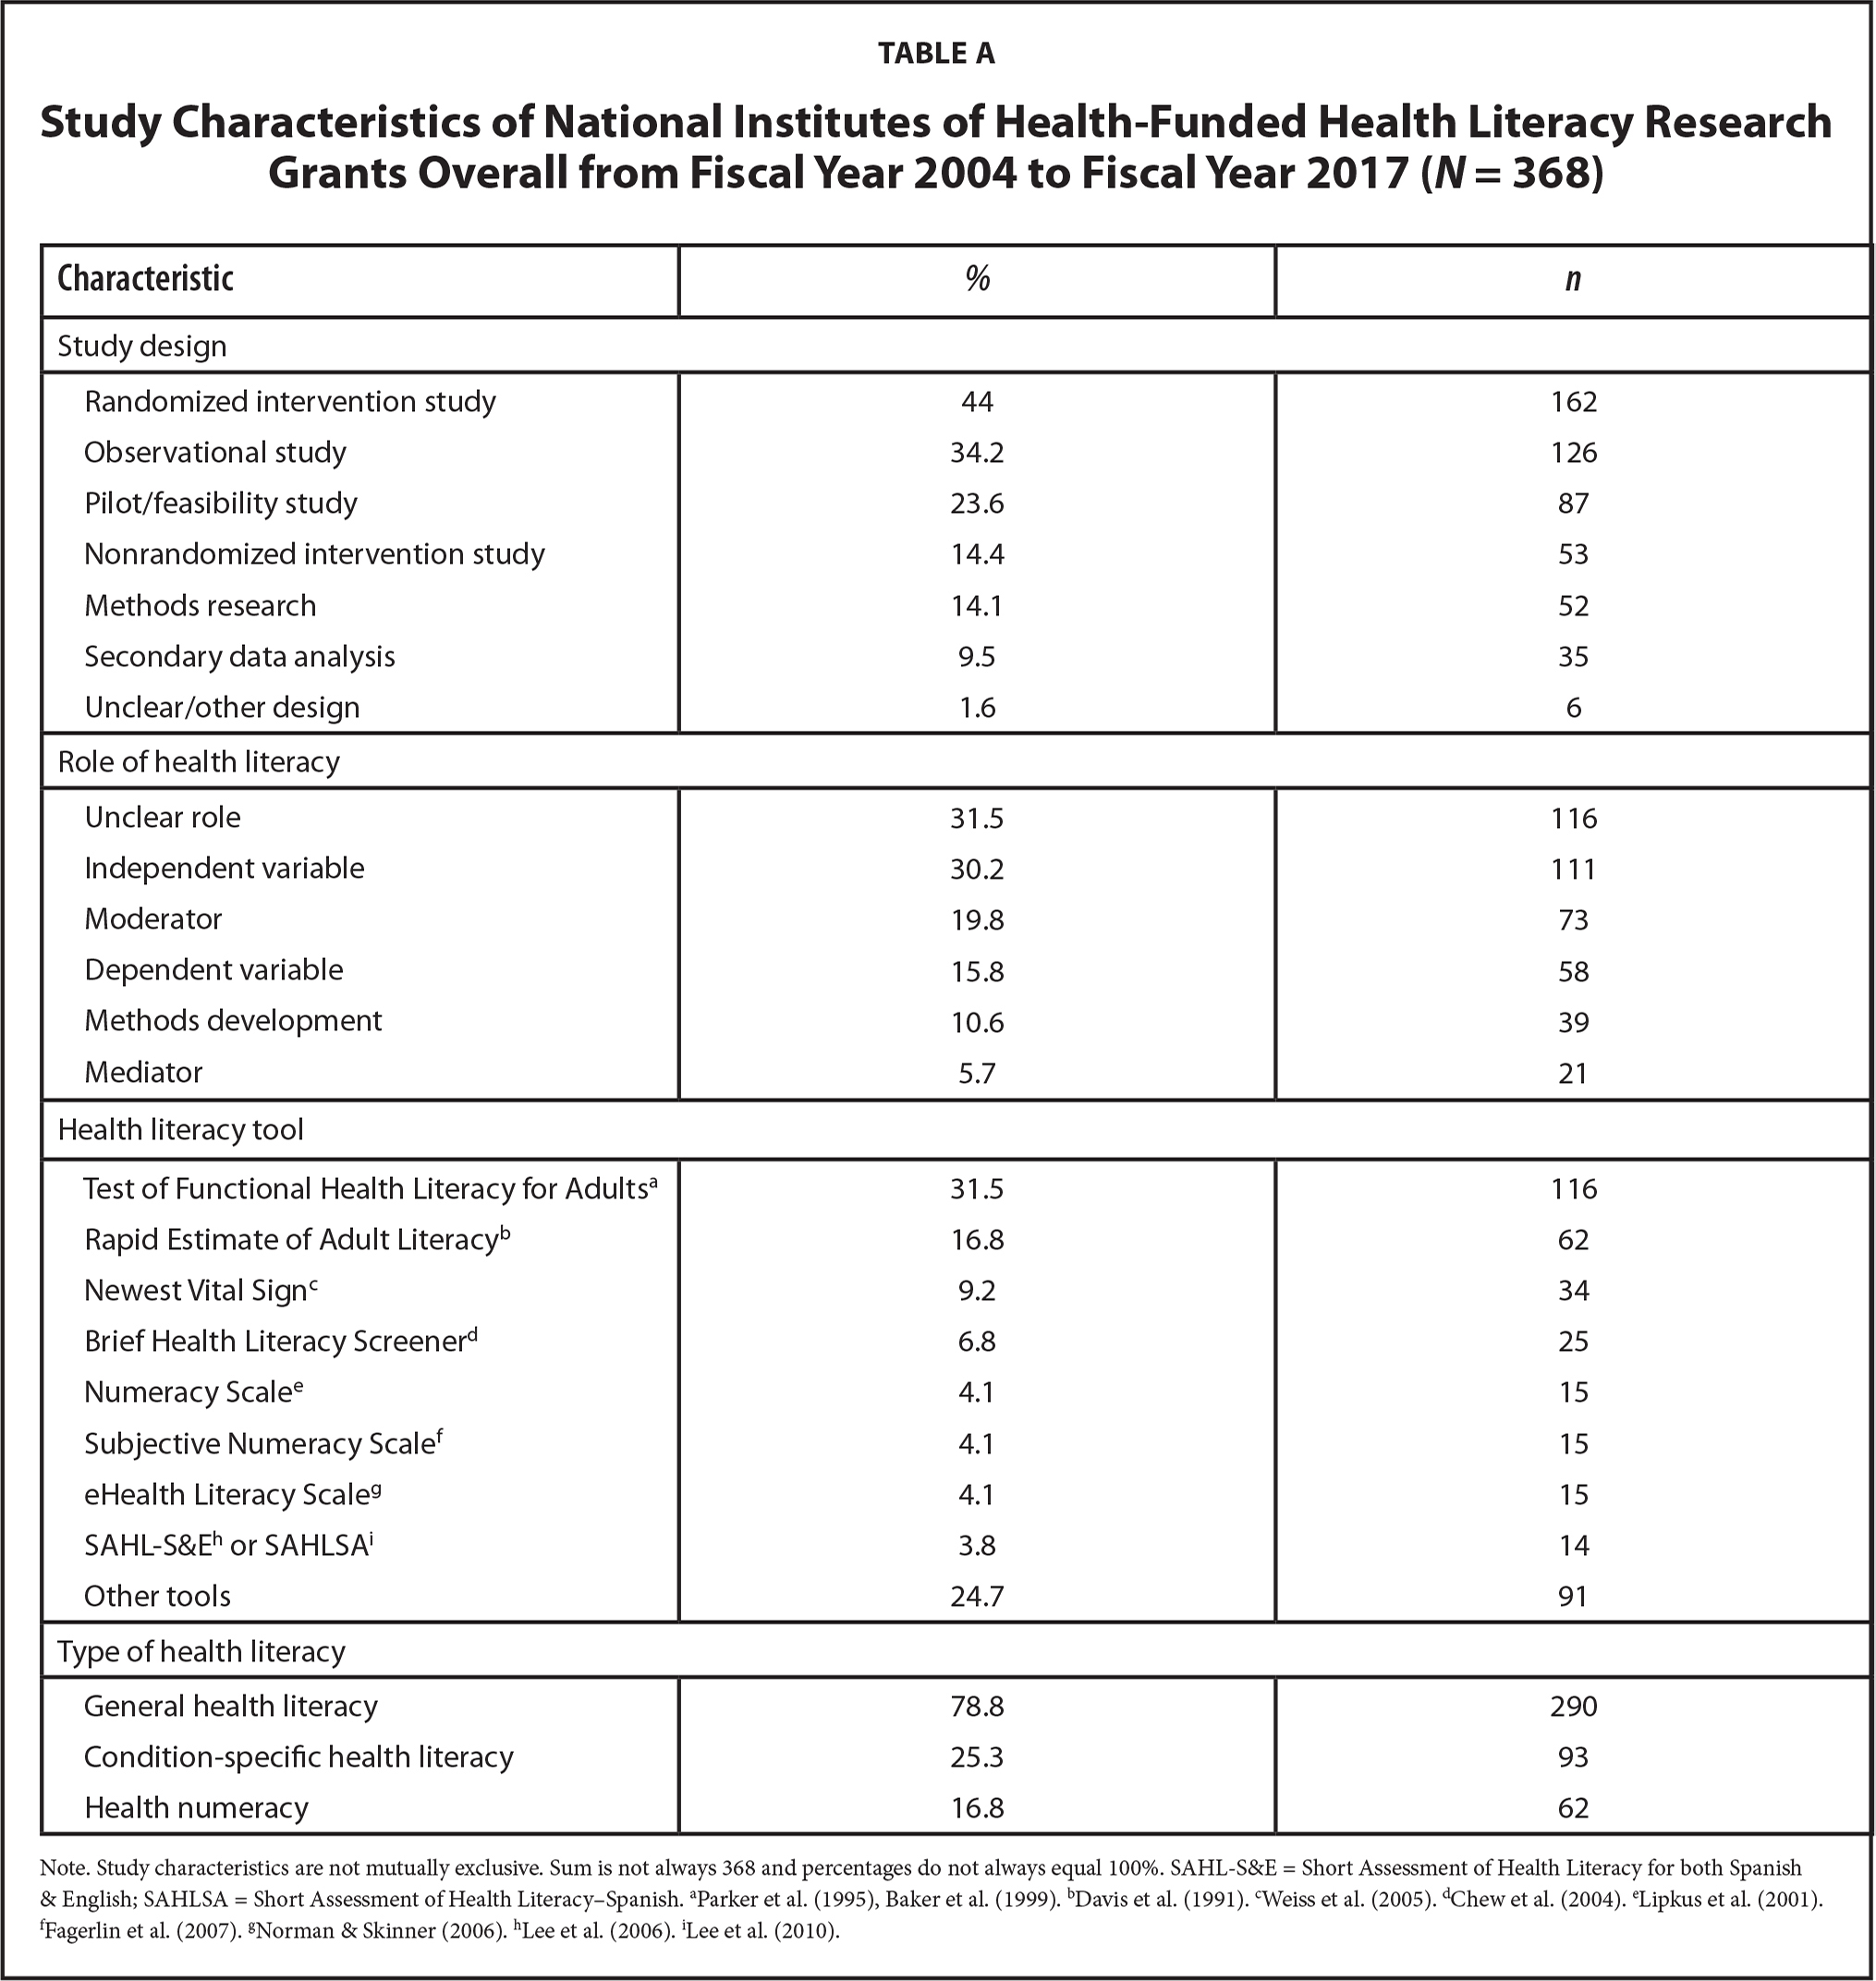 Study Characteristics of National Institutes of Health-Funded Health Literacy Research Grants Overall from Fiscal Year 2004 to Fiscal Year 2017 (N = 368)